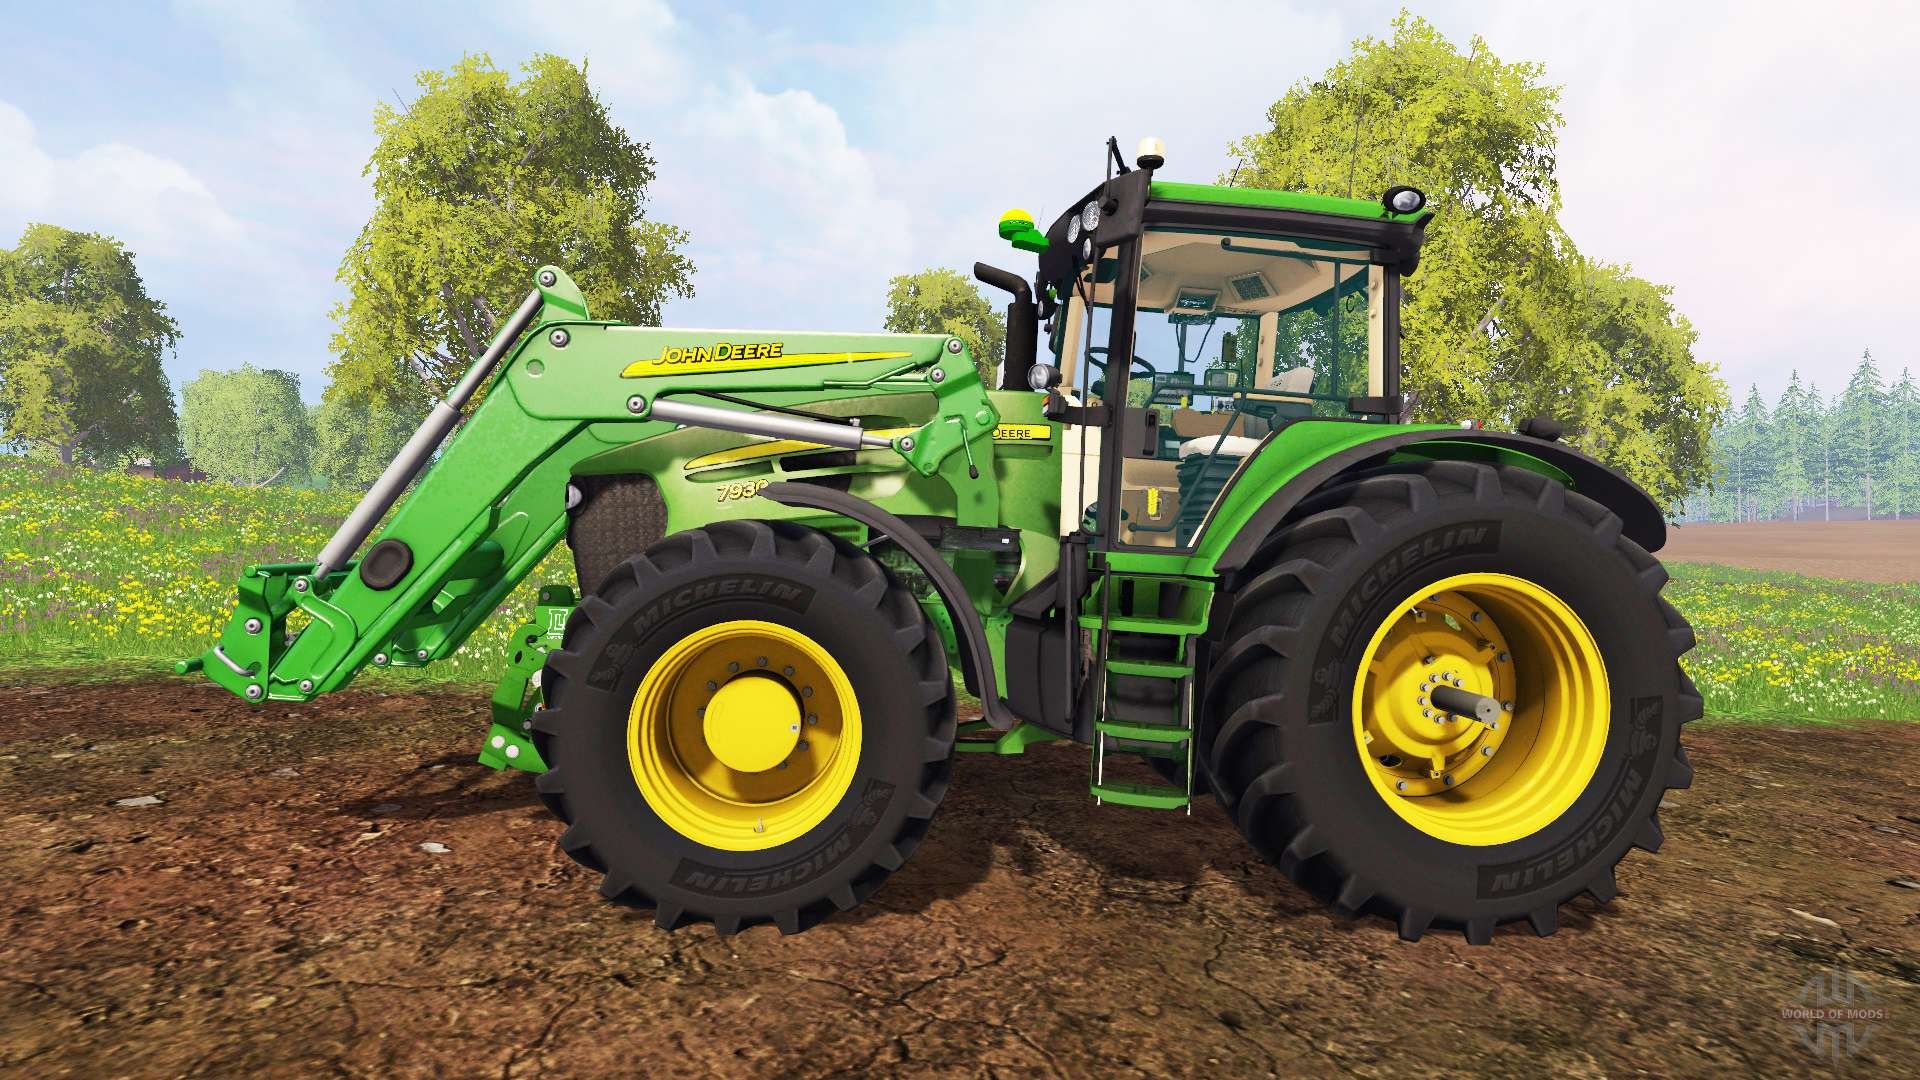 Maxresdefault moreover Wl Sm in addition Df F moreover Farmingsimulator Game likewise B A C C Edd E Fe Fde B F Tractor Birthday Parties Birthday Ideas. on john deere 7930 tractor